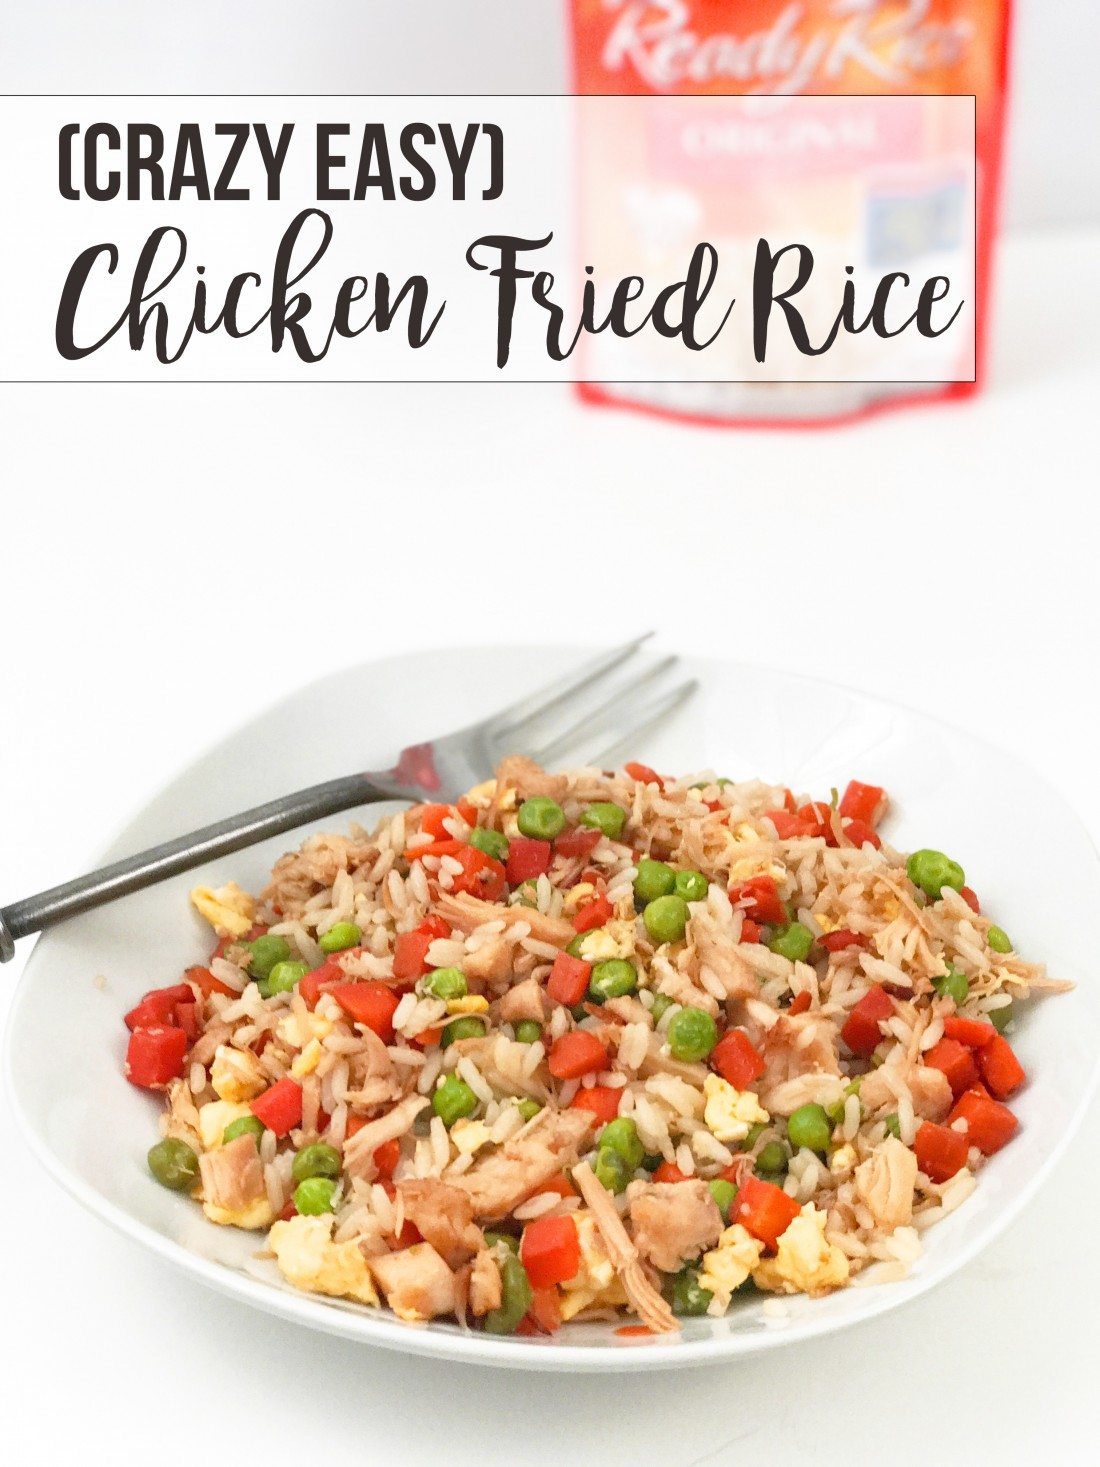 Crazy Easy Chicken Fried Rice